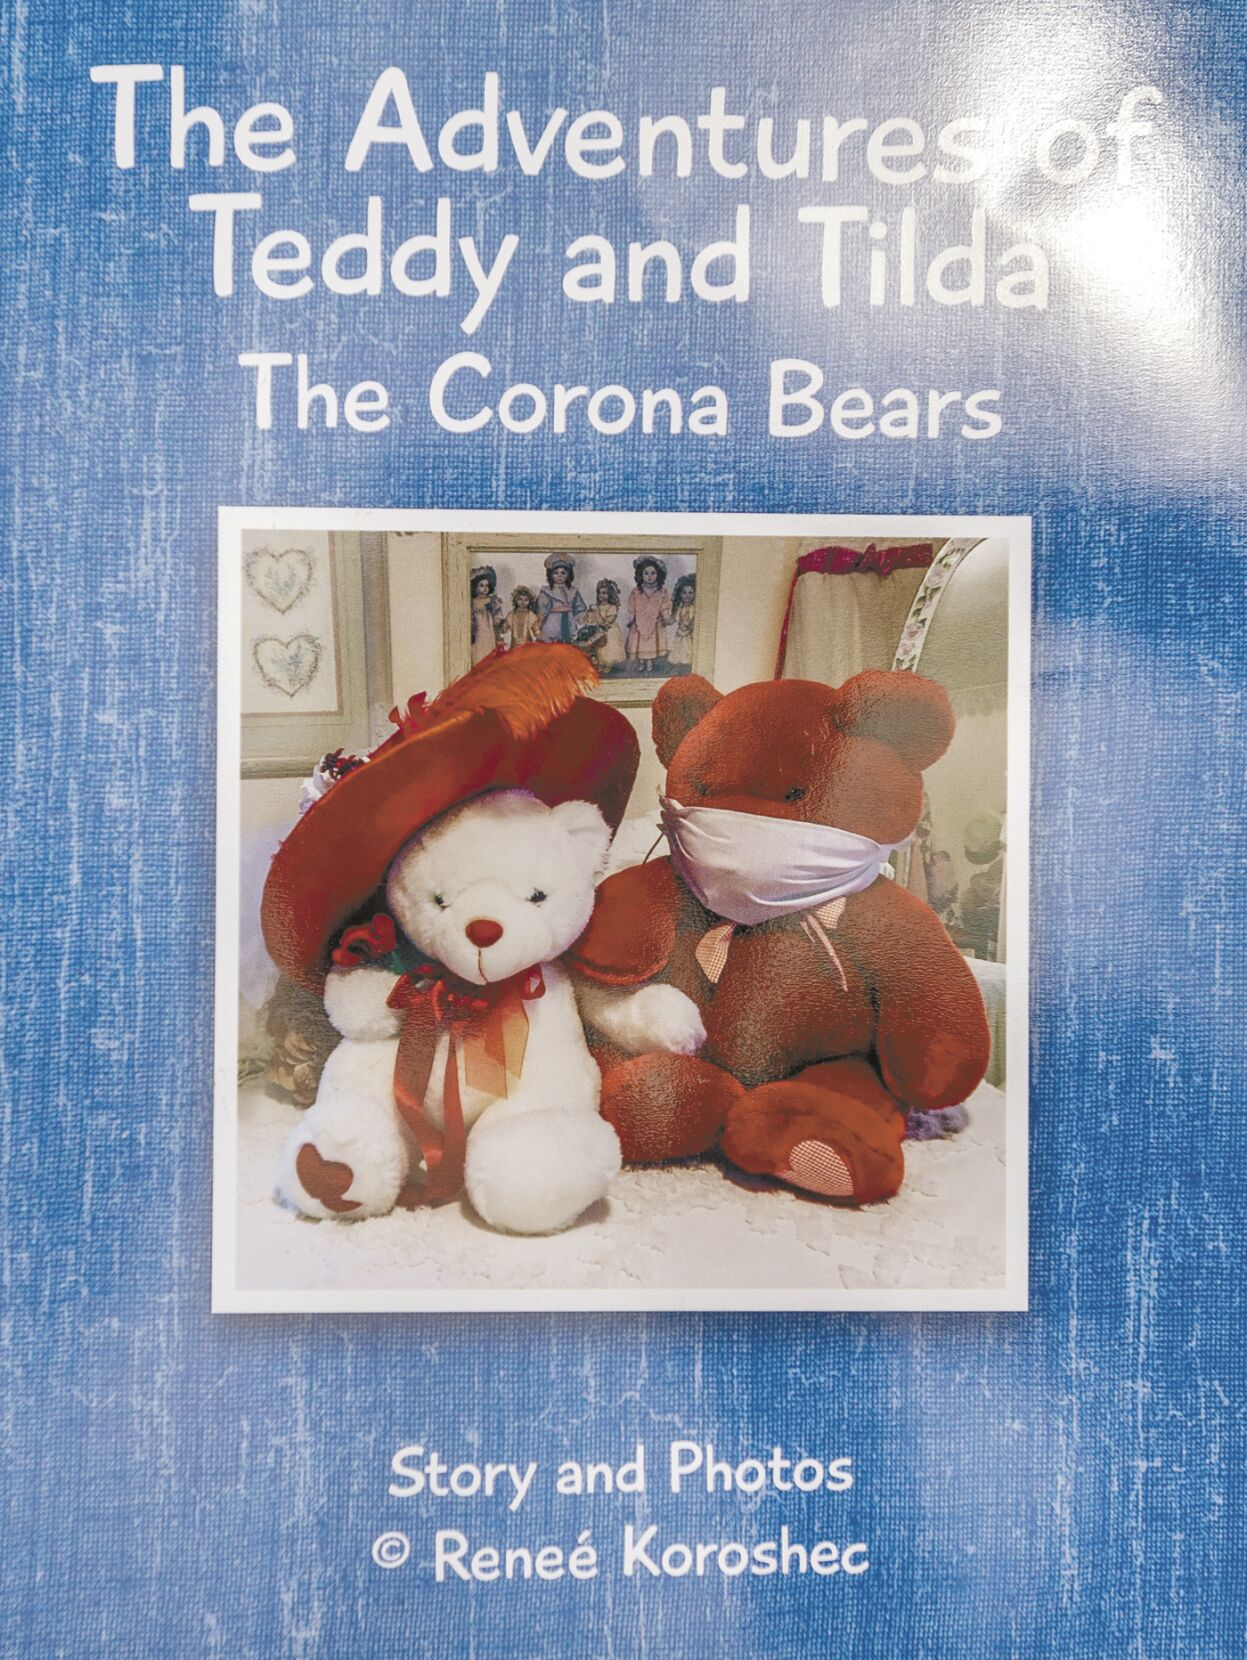 Children's book about the Corona Bears